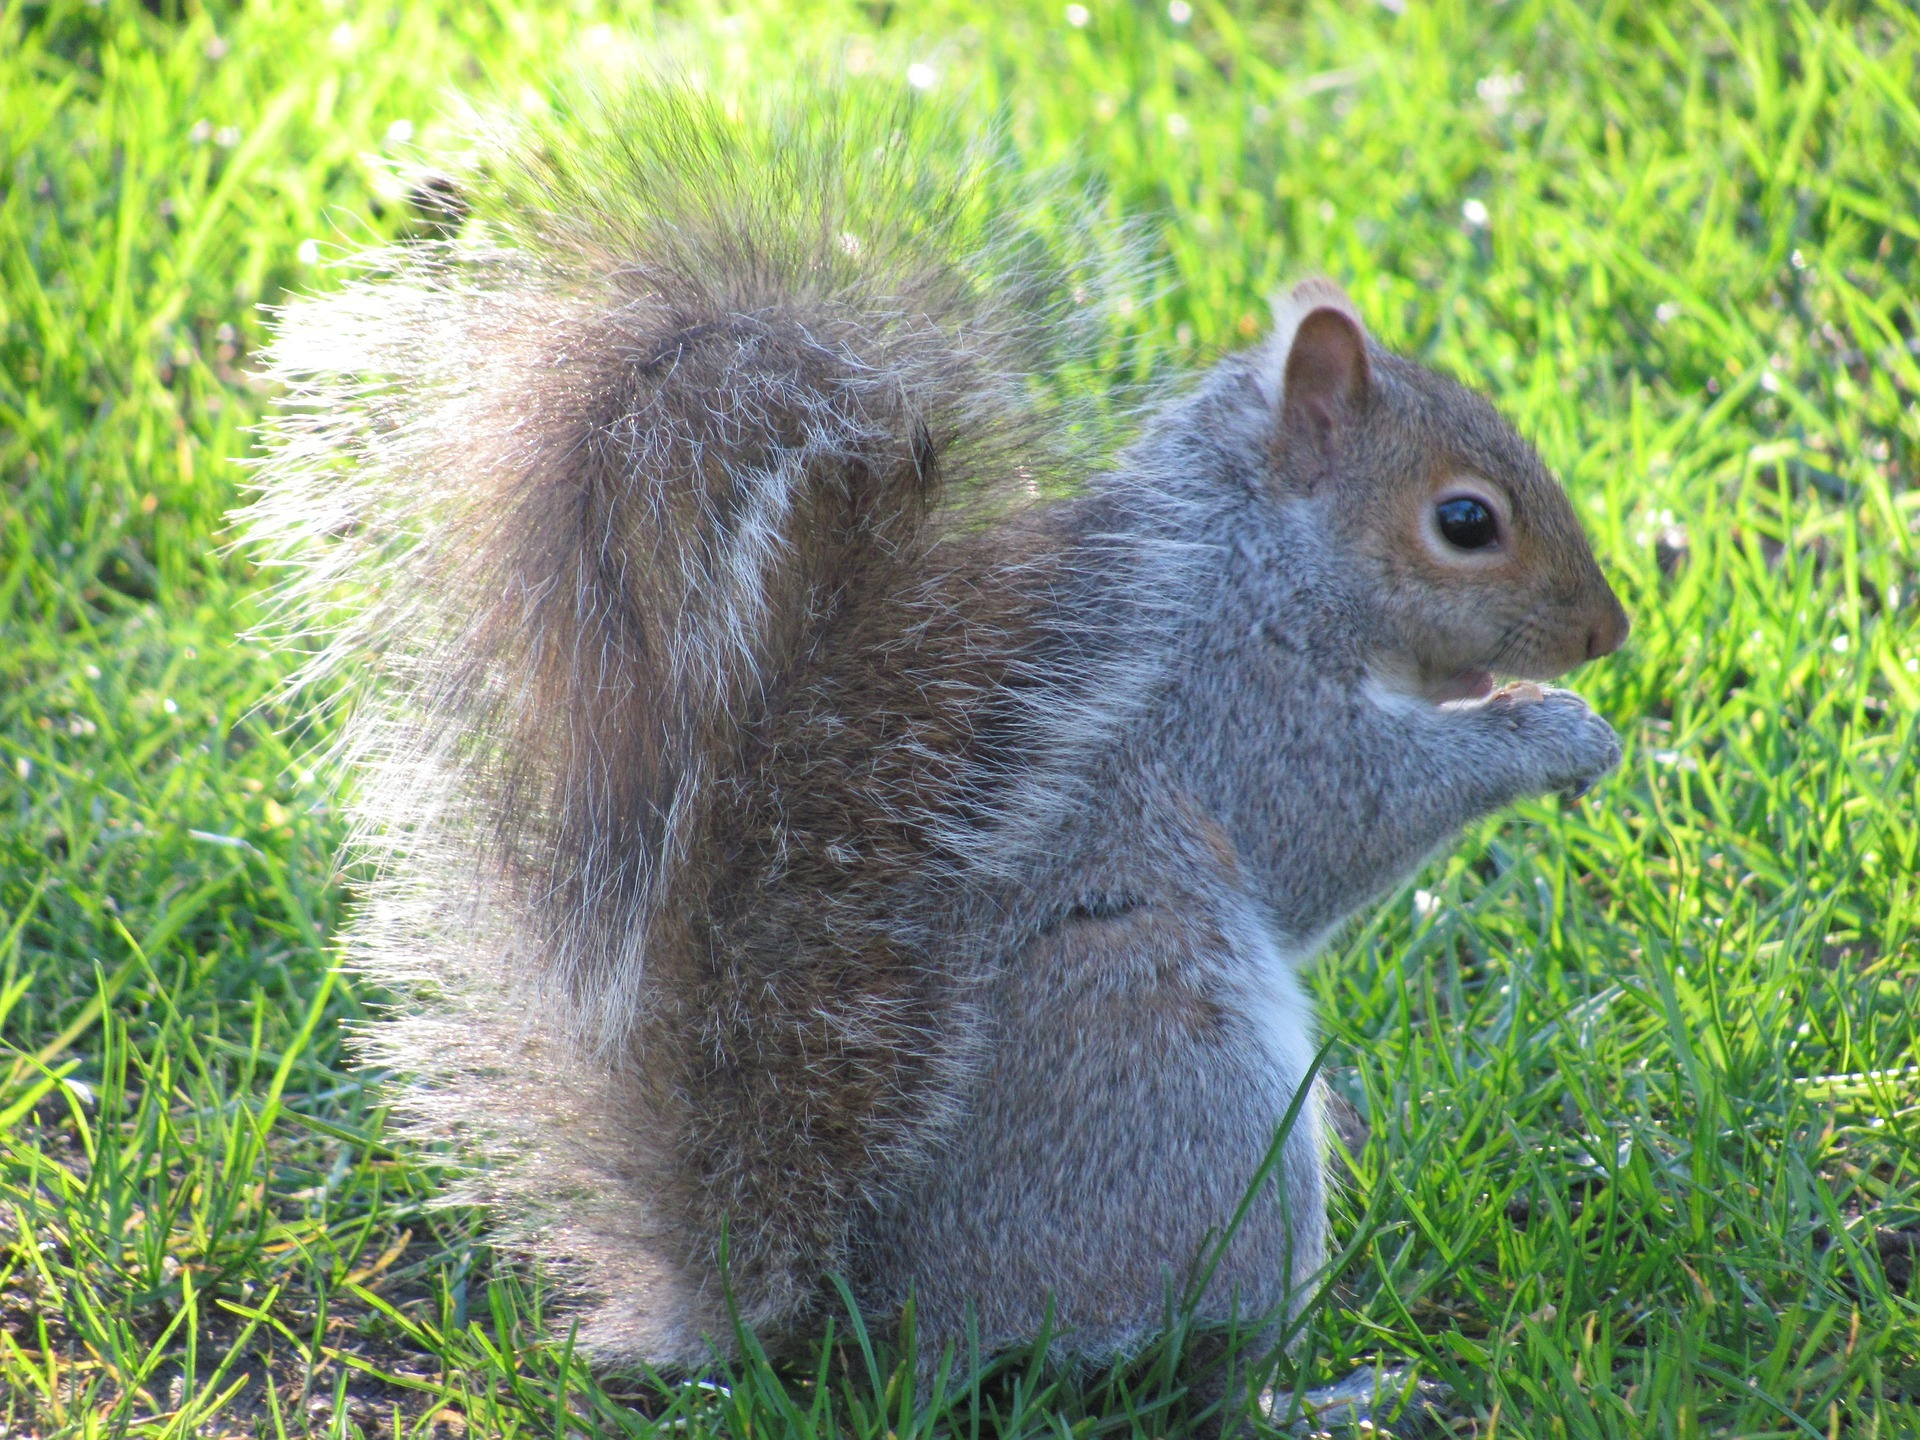 Squirrels How To Identify Control And Get Rid Of Squirrels In Your Garden The Old Farmer 39 S